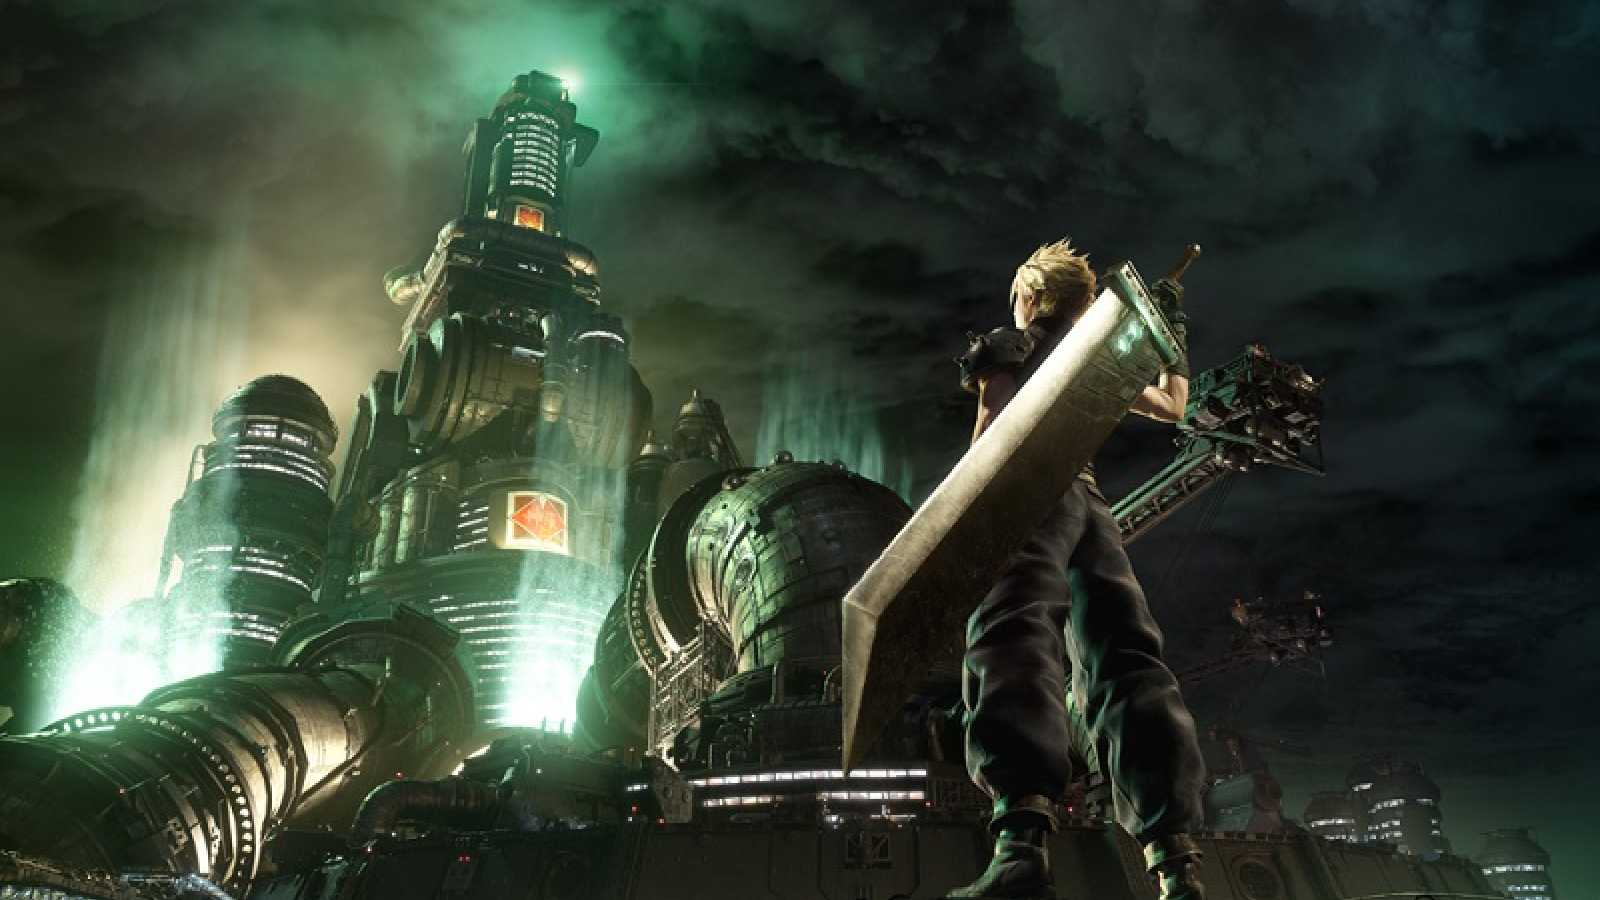 Le générique de FINAL FANTASY VII REMAKE a été dévoilé  © 1997, 2020 SQUARE ENIX CO., LTD. All Rights Reserved. CHARACTER DESIGN: TETSUYA NOMURA/ROBERTO FERRARI